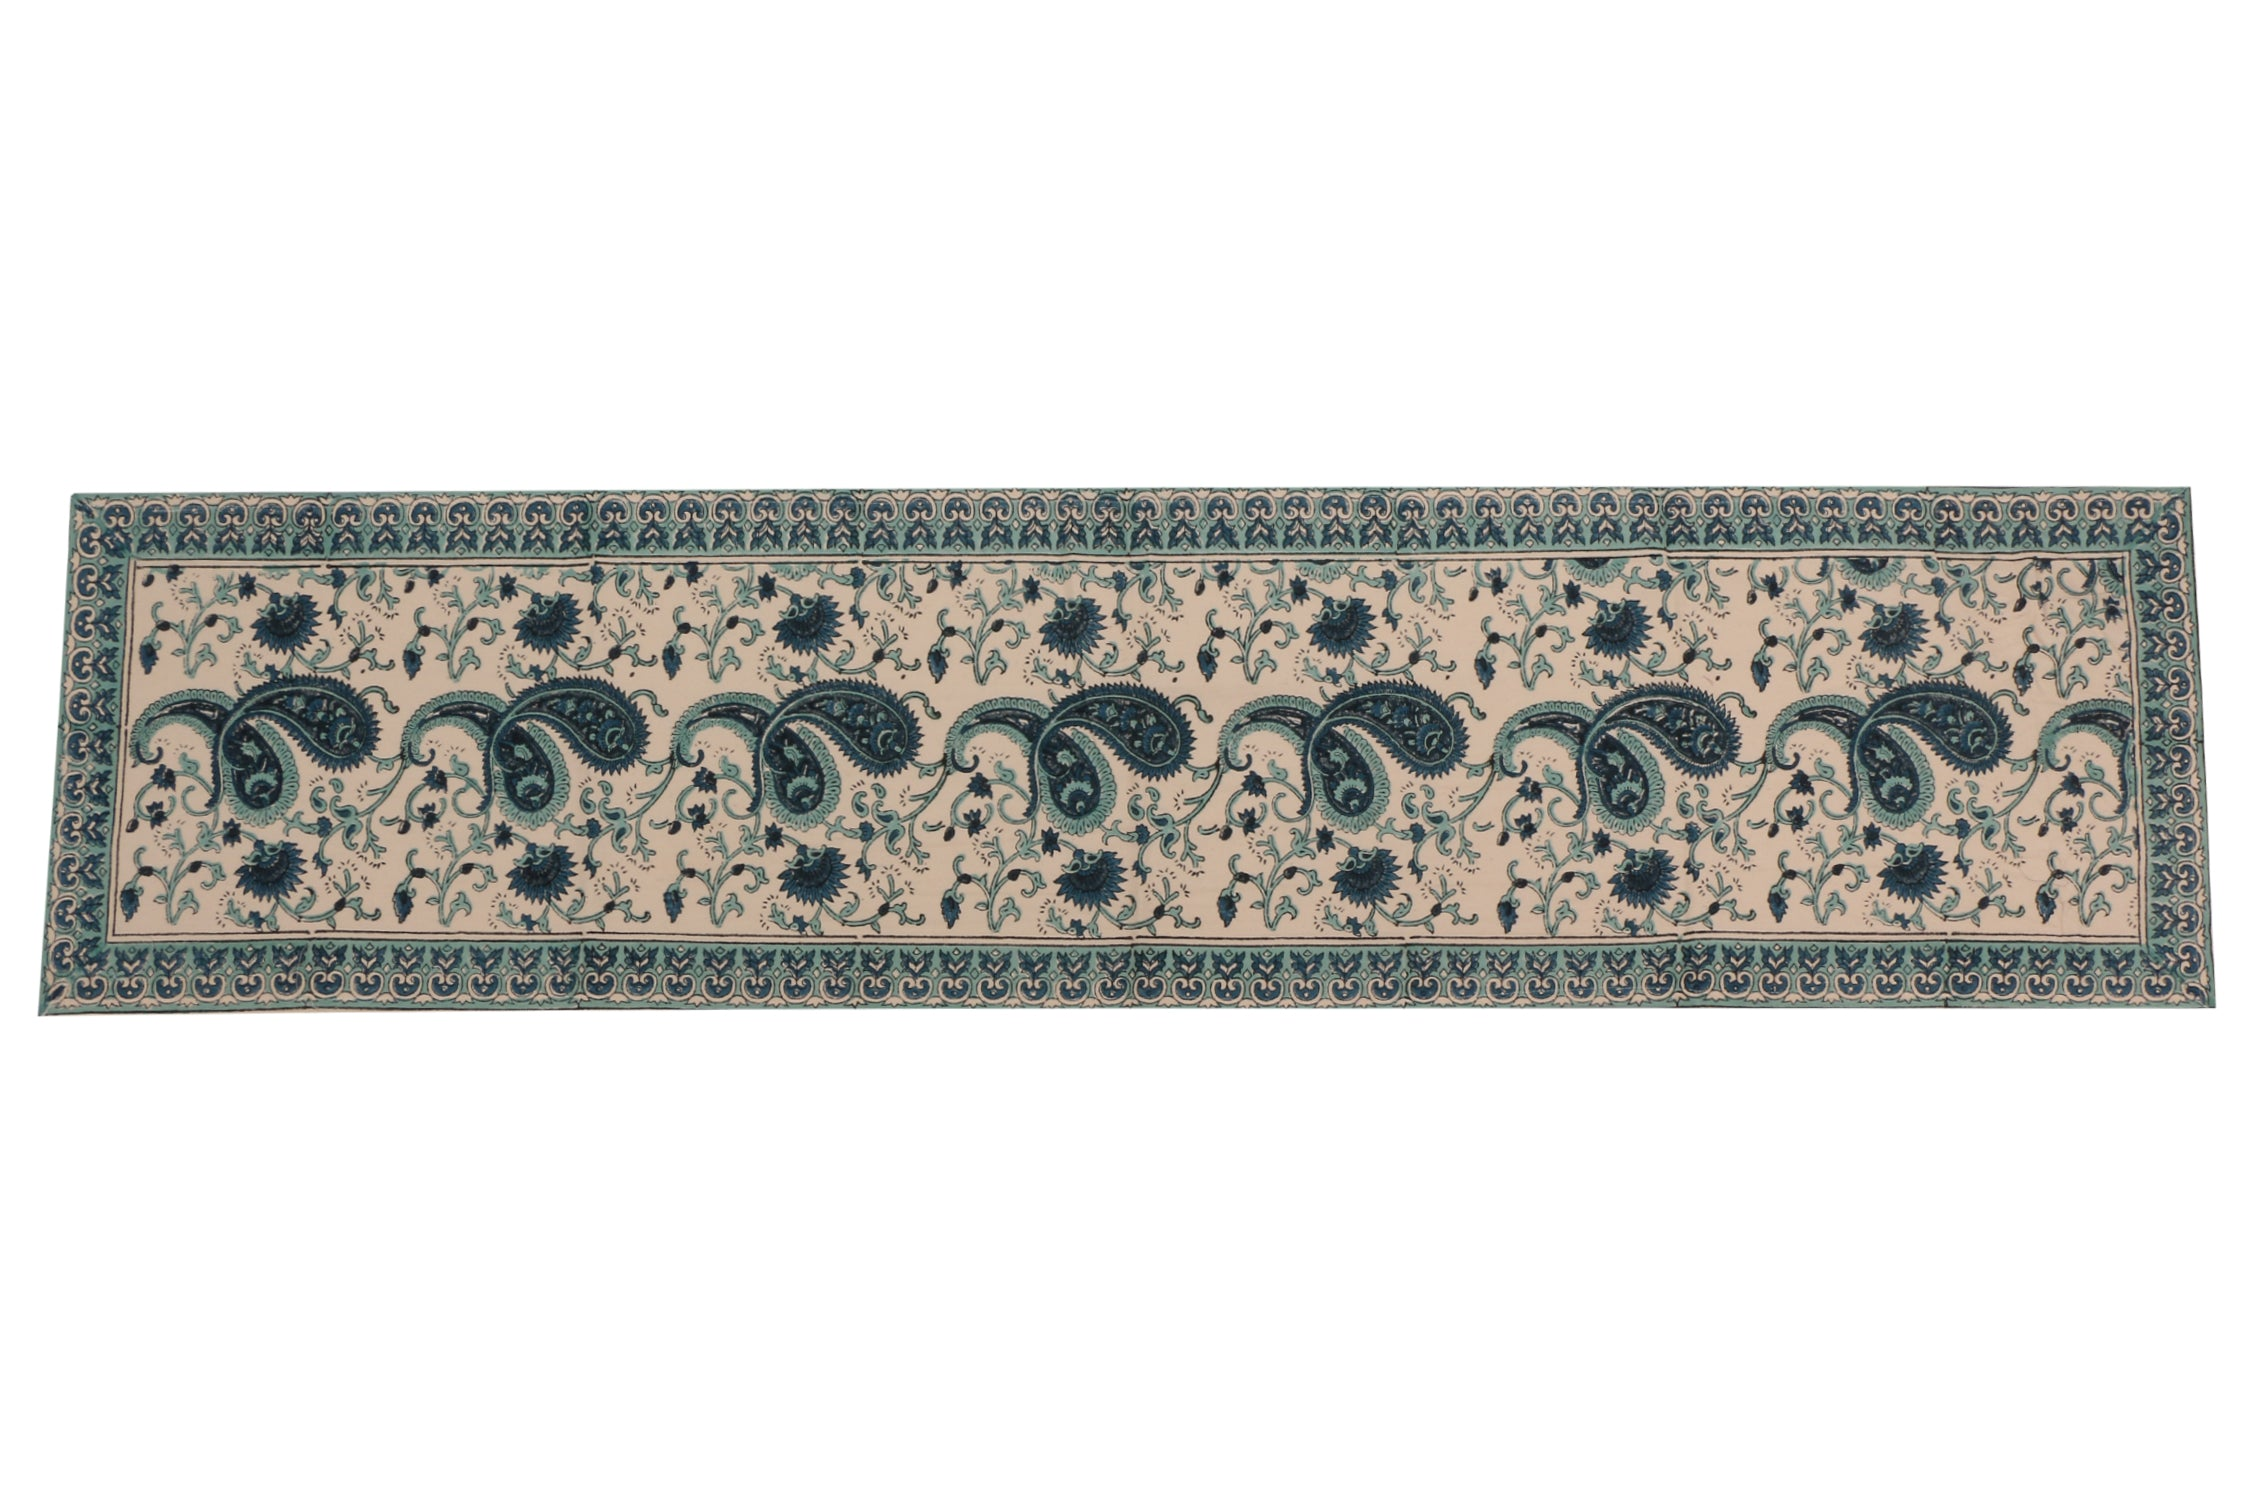 Cotton Floral & Paisley Table Runner - 5